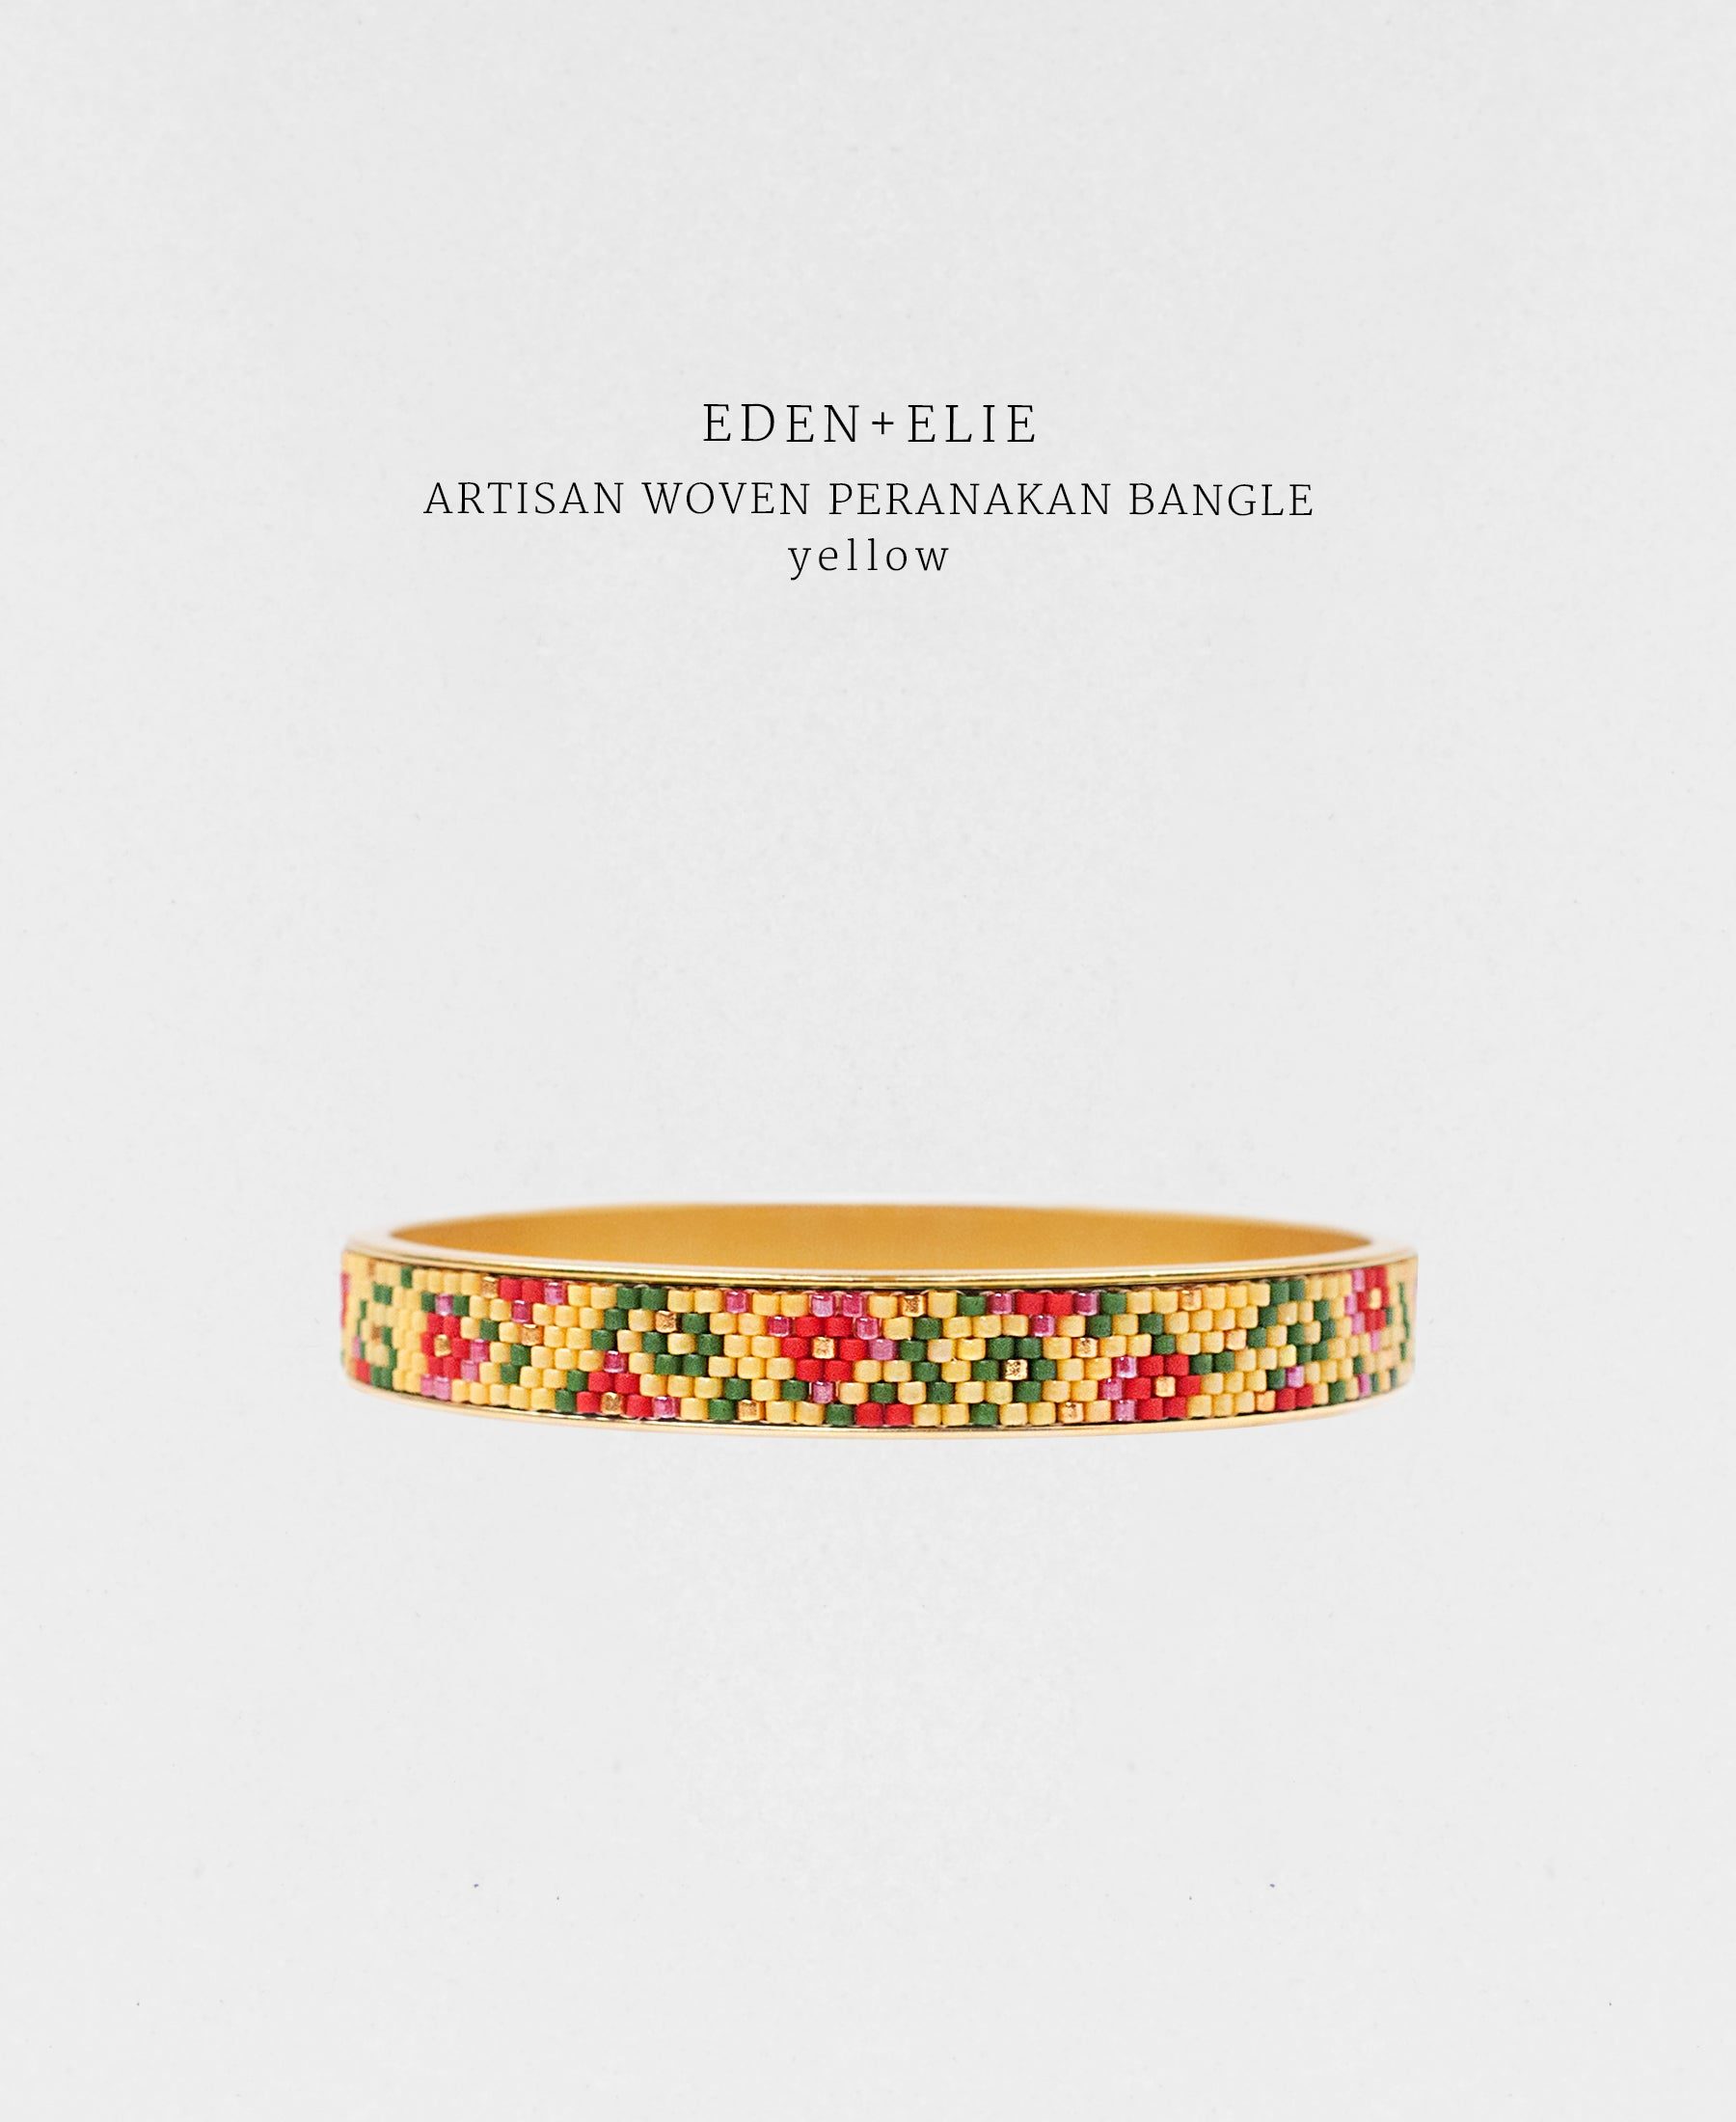 EDEN + ELIE Modern Peranakan gold narrow bangle -  yellow